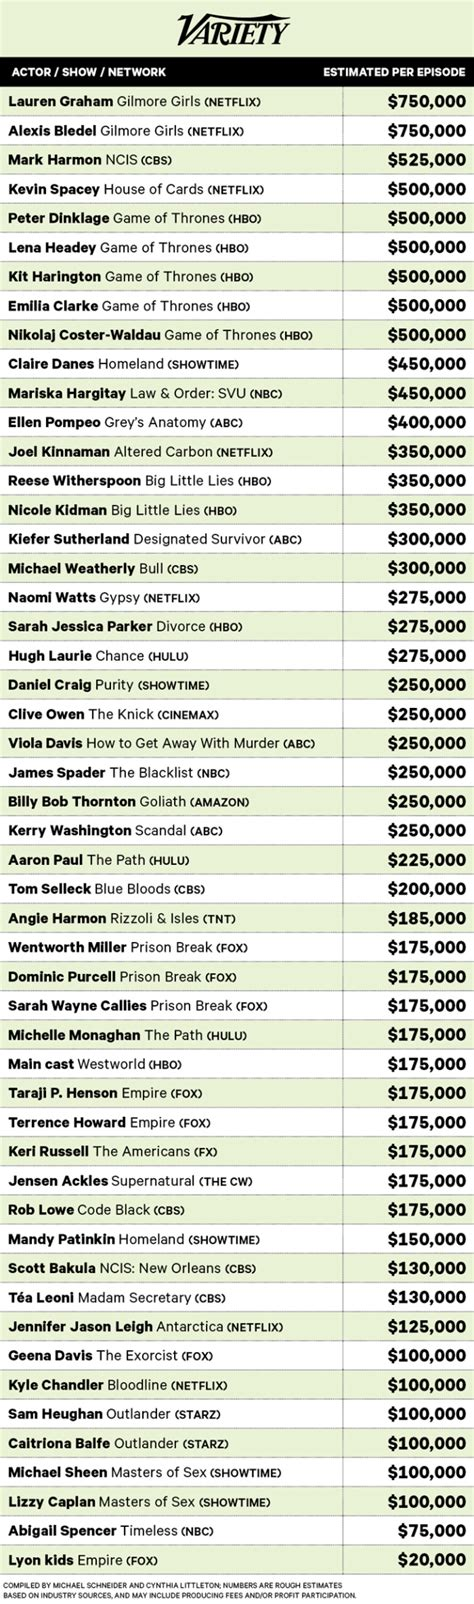 highest paid actors on tv their salaries revealed variety highest paid actors on tv their salaries revealed variety